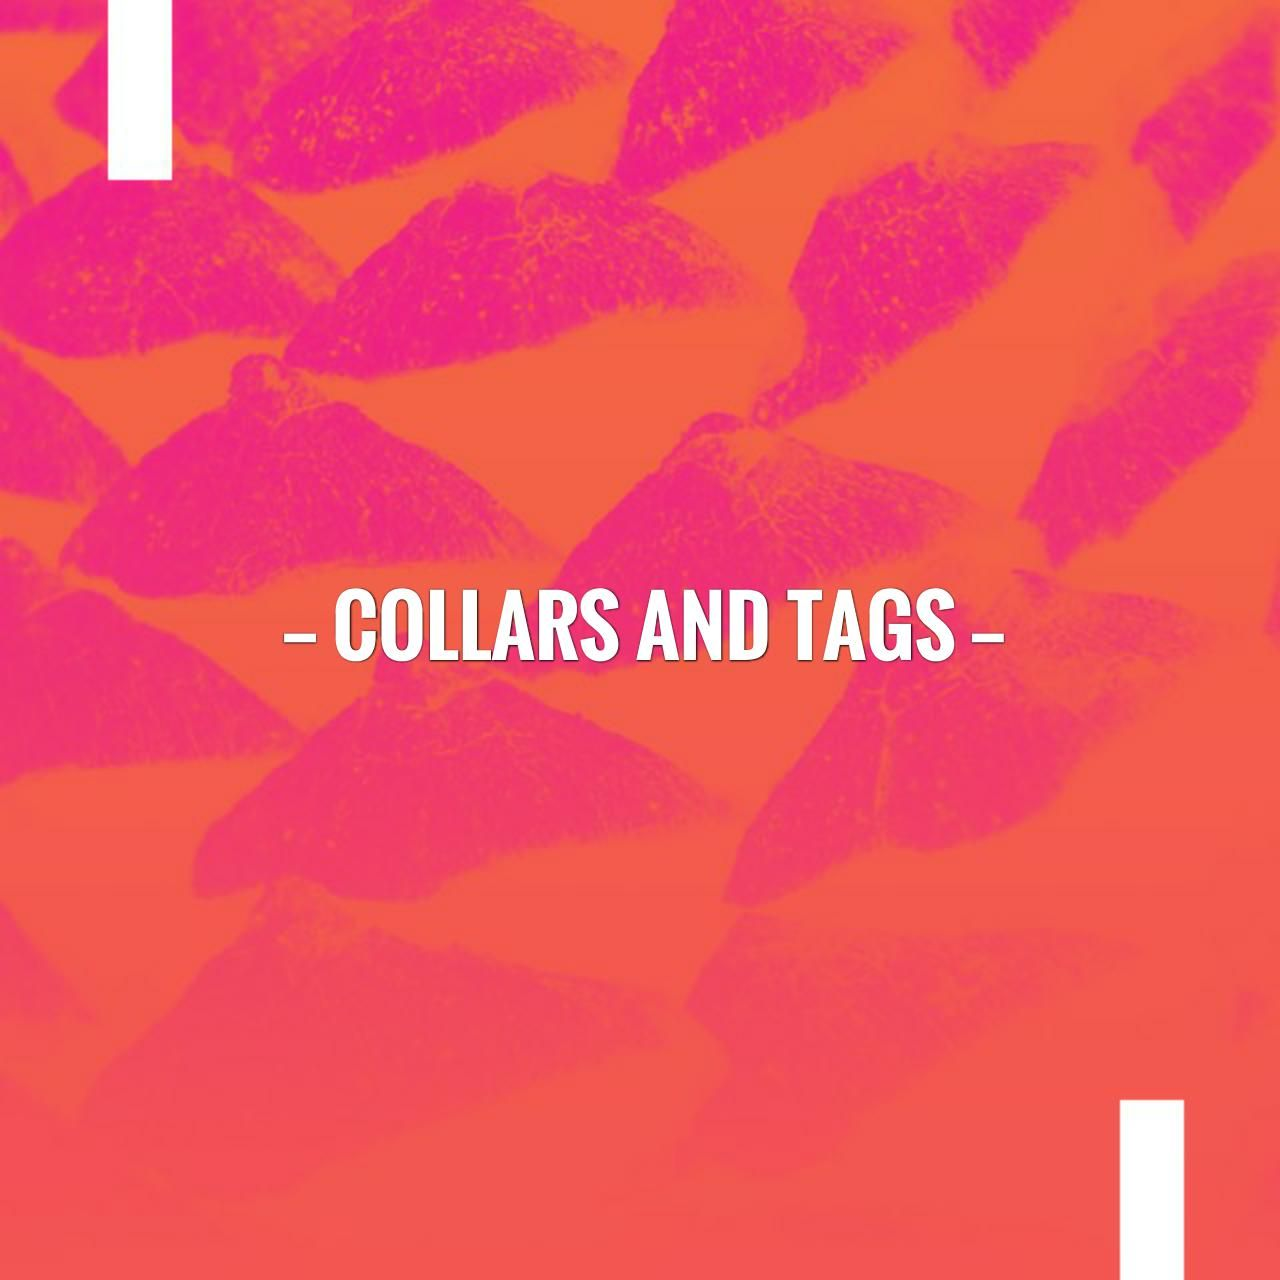 Collars and Tags First blog post, About me blog, Custom